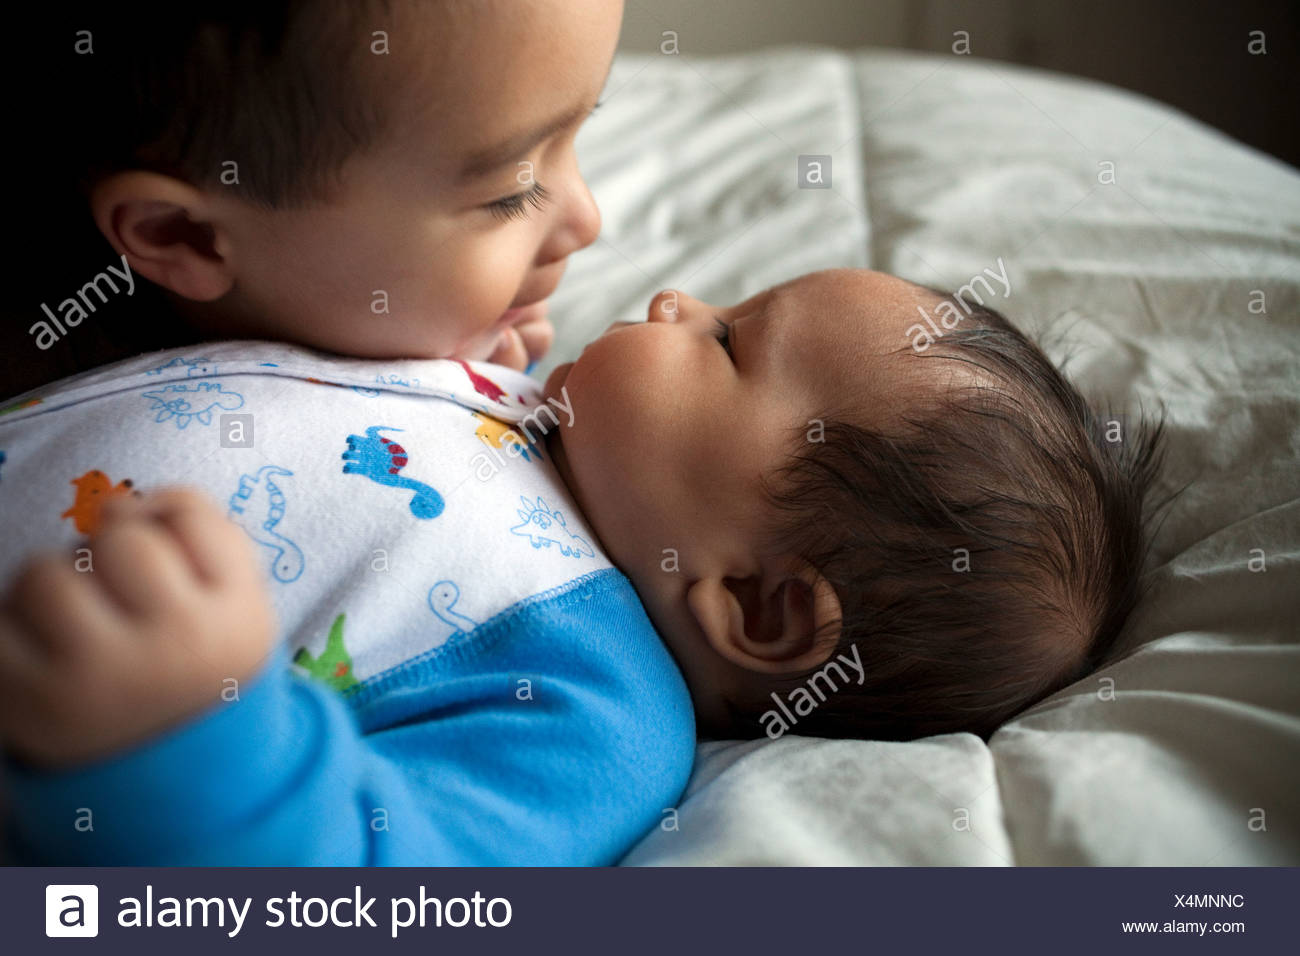 Boy with baby brother, close up - Stock Image